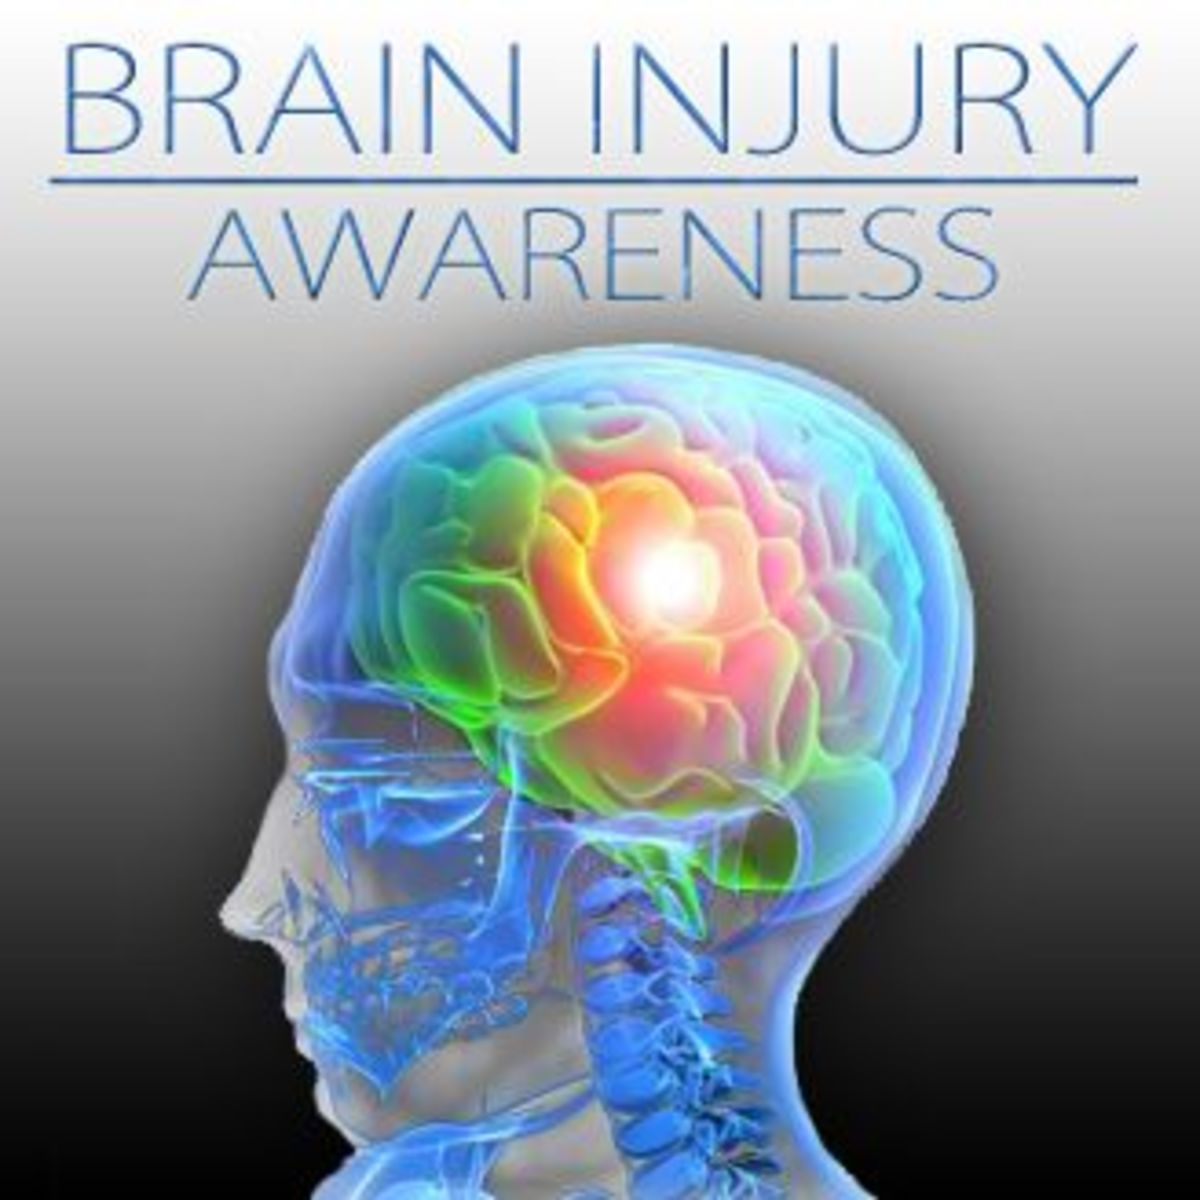 Traumatic brain injury (TBI) is damage to the brain.